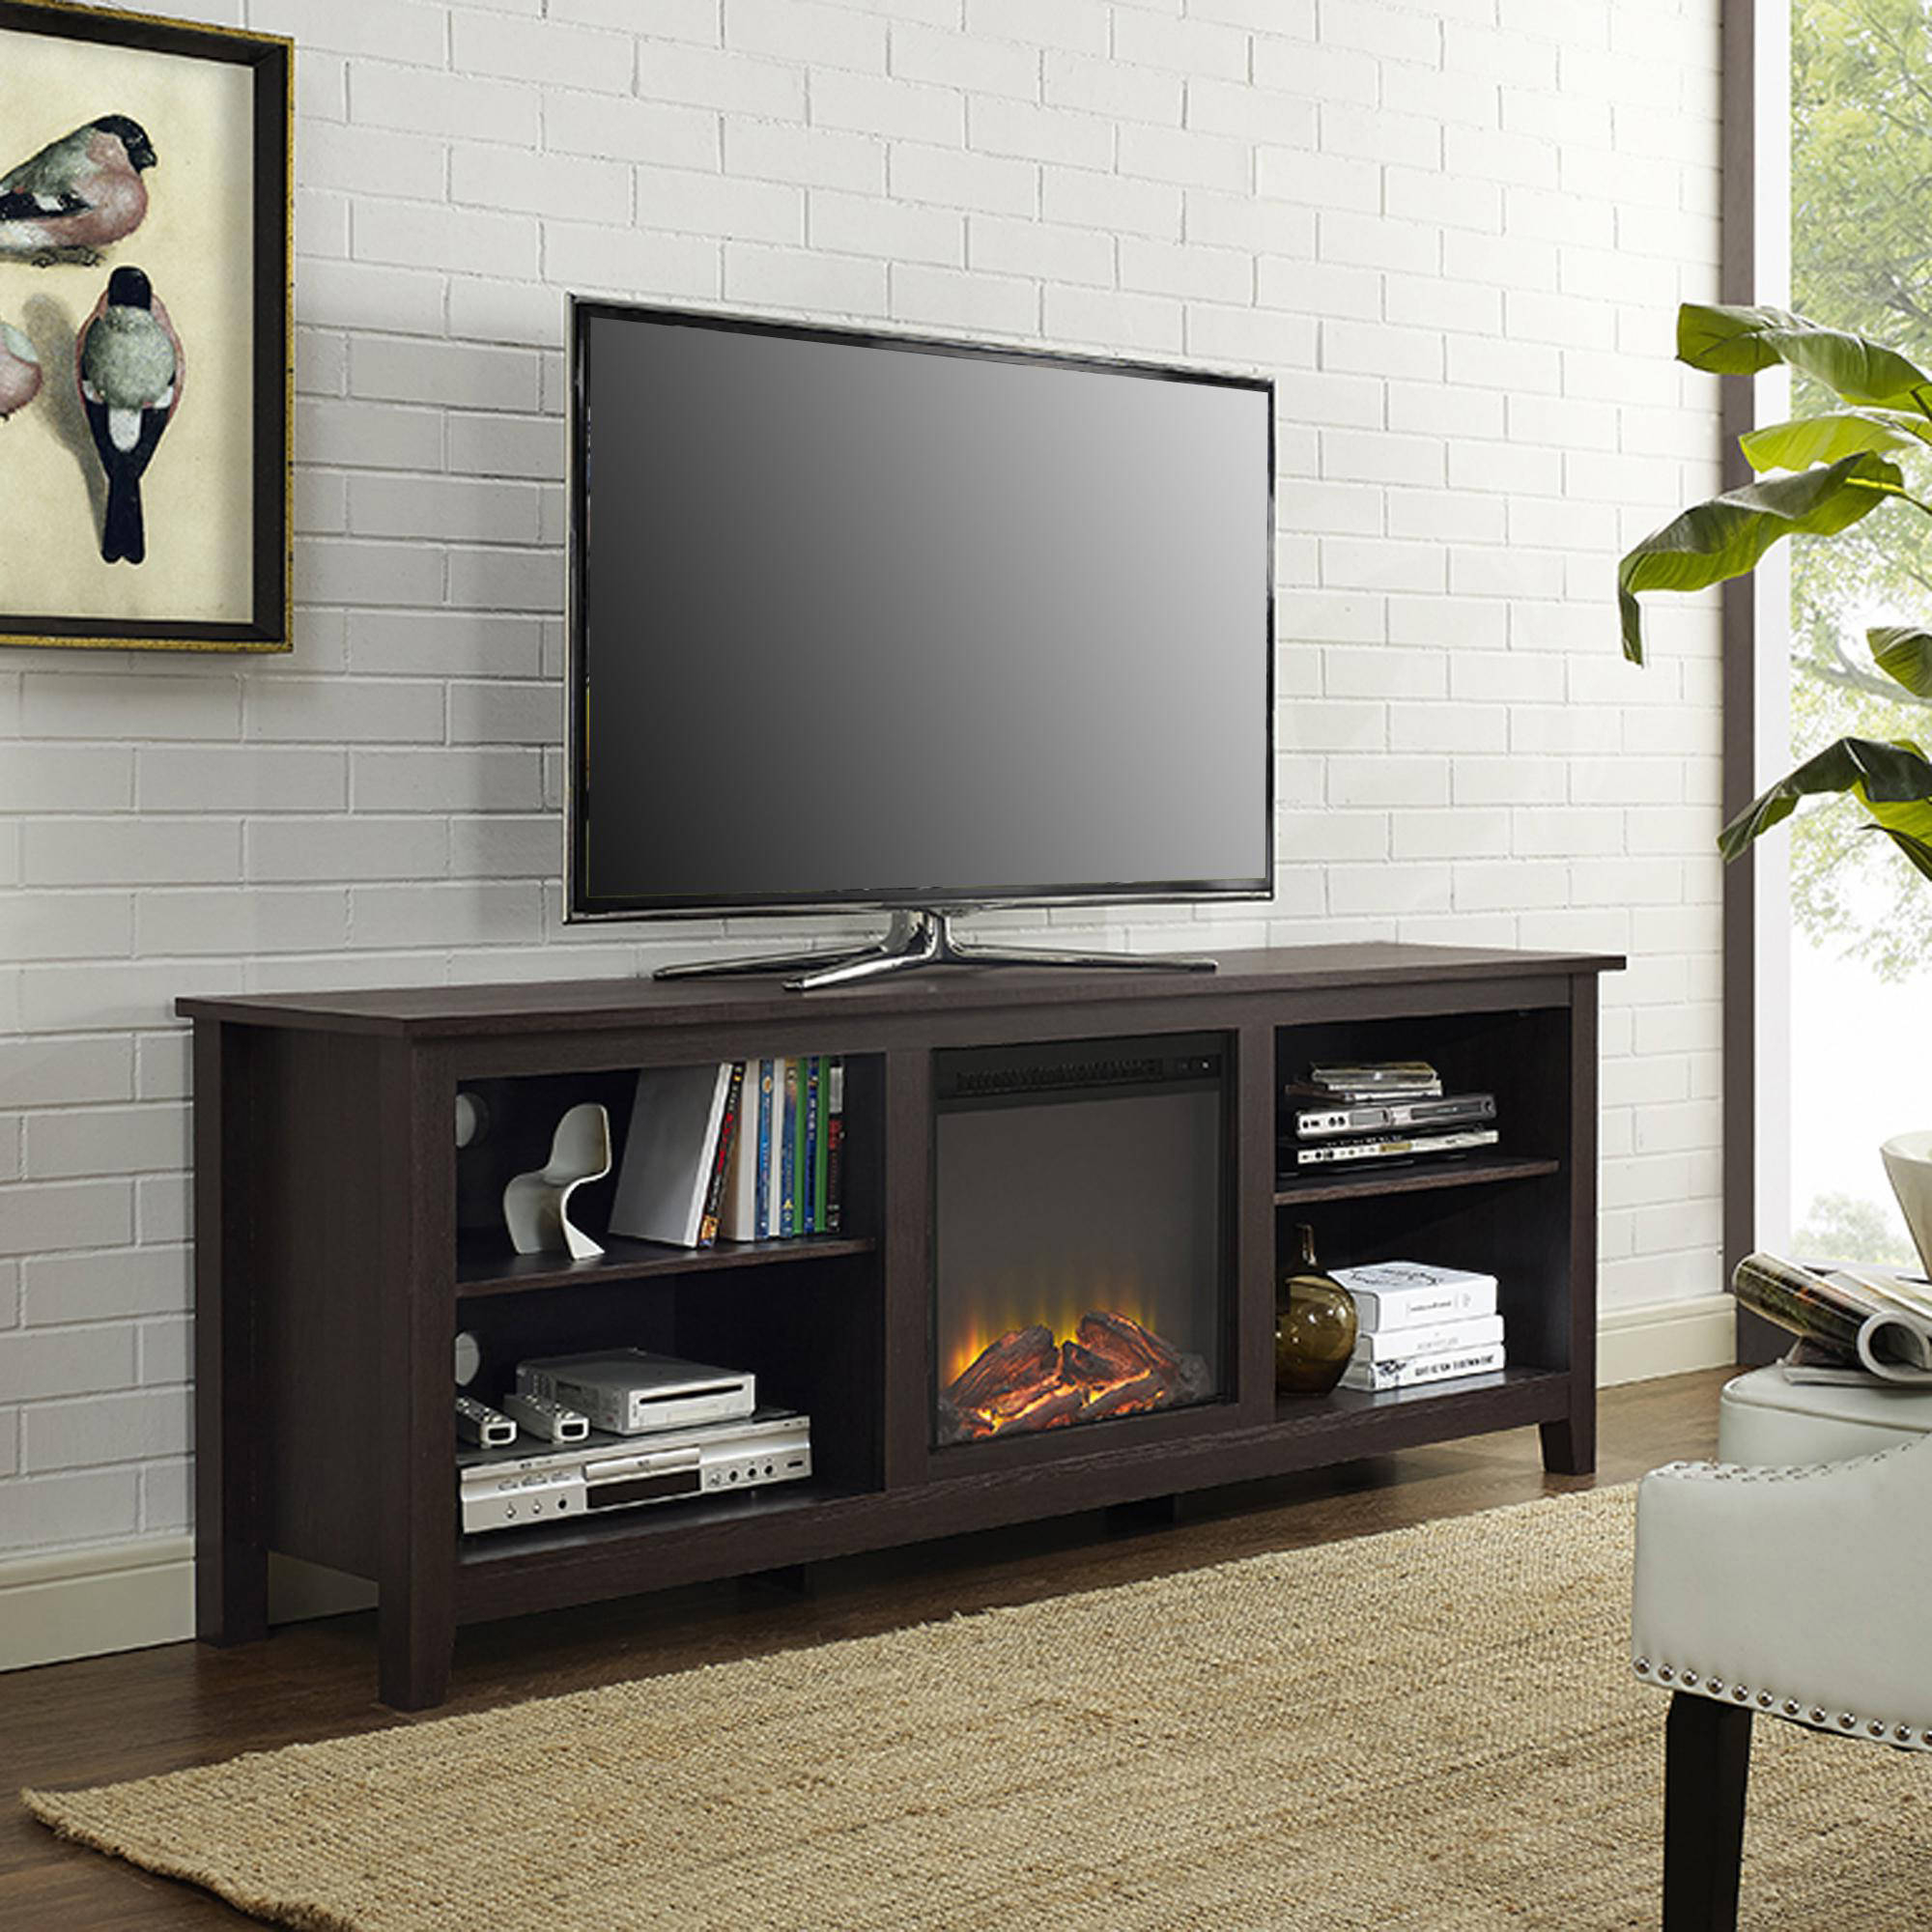 Tv Stands & Entertainment Centers – Walmart Within Best And Newest Century White 60 Inch Tv Stands (View 5 of 20)